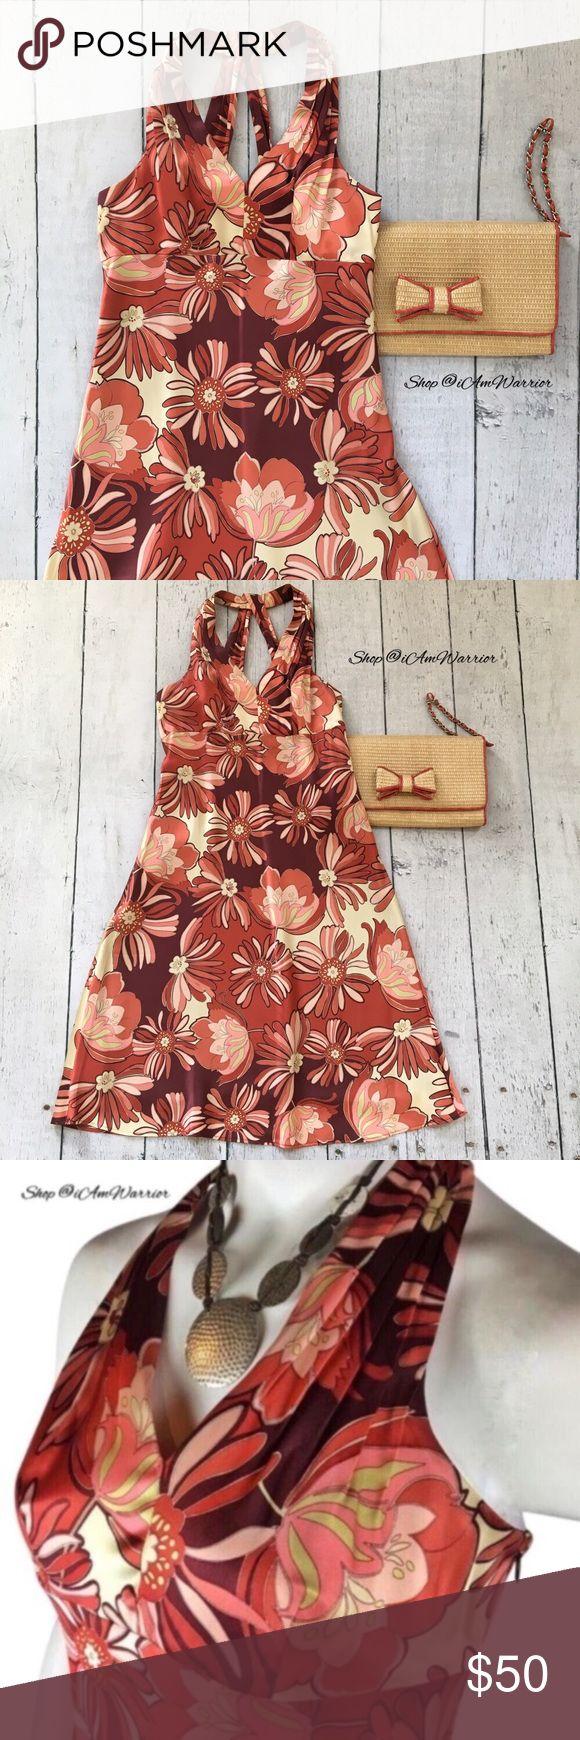 Ann Taylor Loft silk floral print dress Gorgeous Ann Taylor Loft silk blend empire waist halter dress. Pleated shoulder detail, twisted criss cross halter back. Excellent condition, smoke free home. Burgundy, salmon, pink & ivory floral print. Purse sold separately. Please read recently updated bio regarding closet policies prior to any inquiries. LOFT Dresses Midi